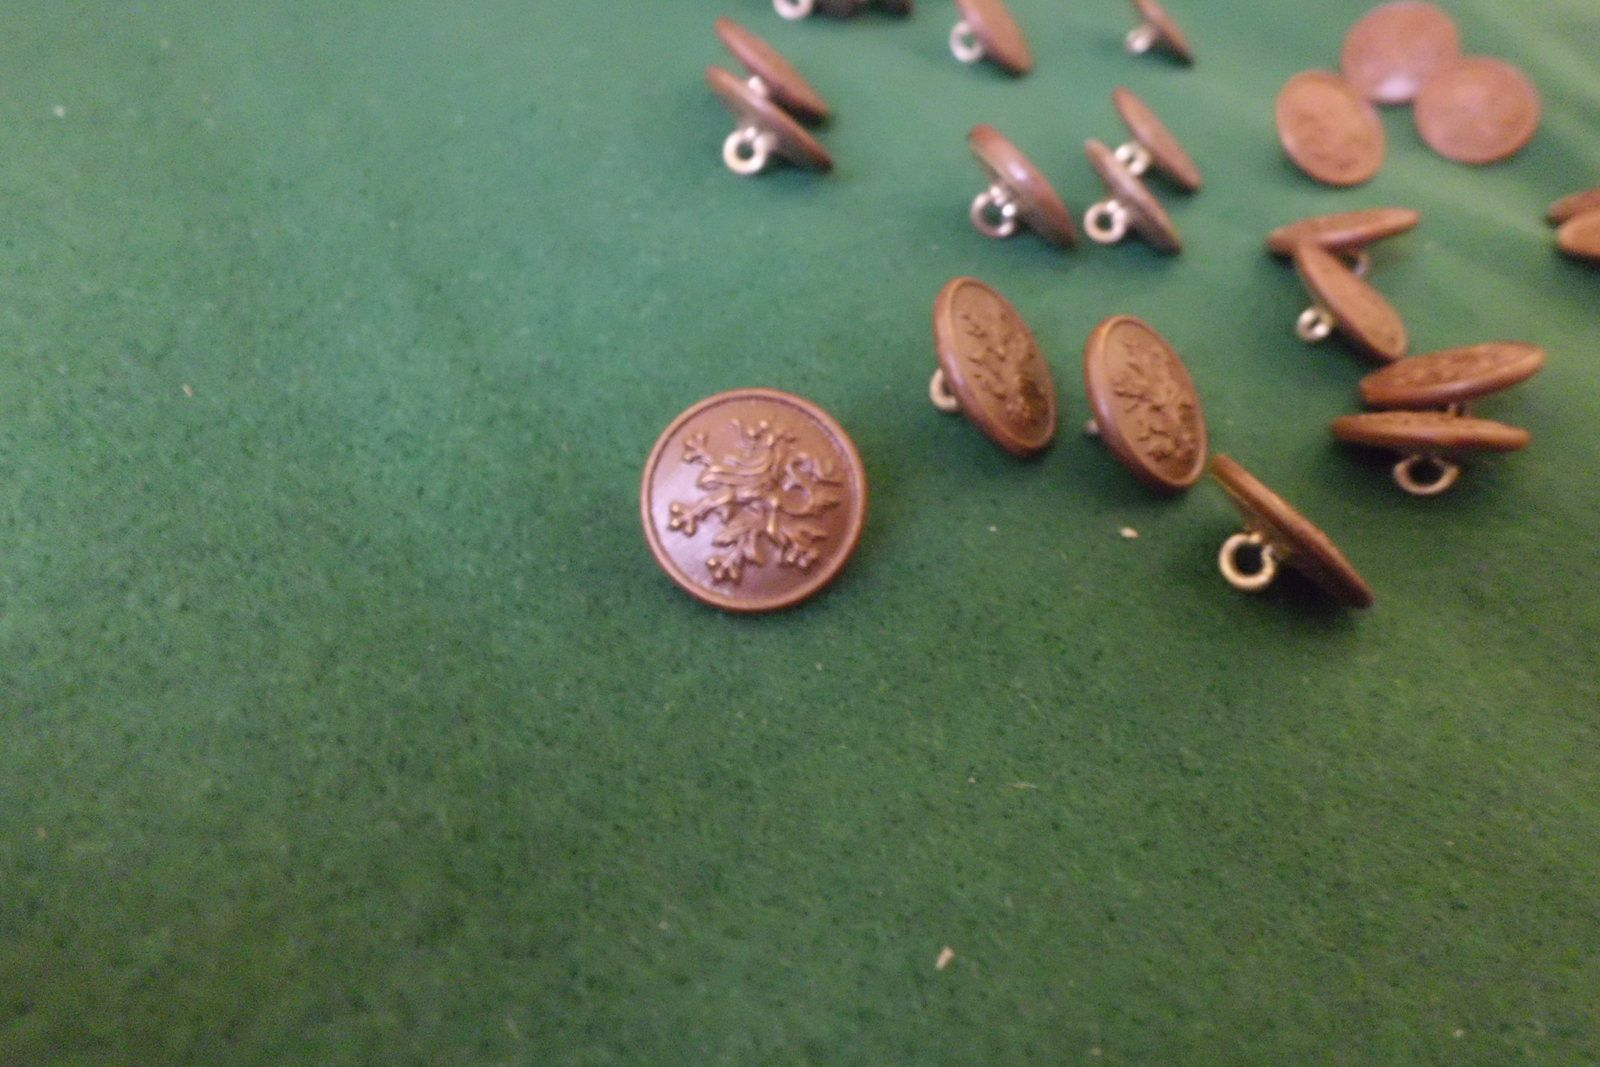 Mon tissus et les boutons / My fabric and buttons